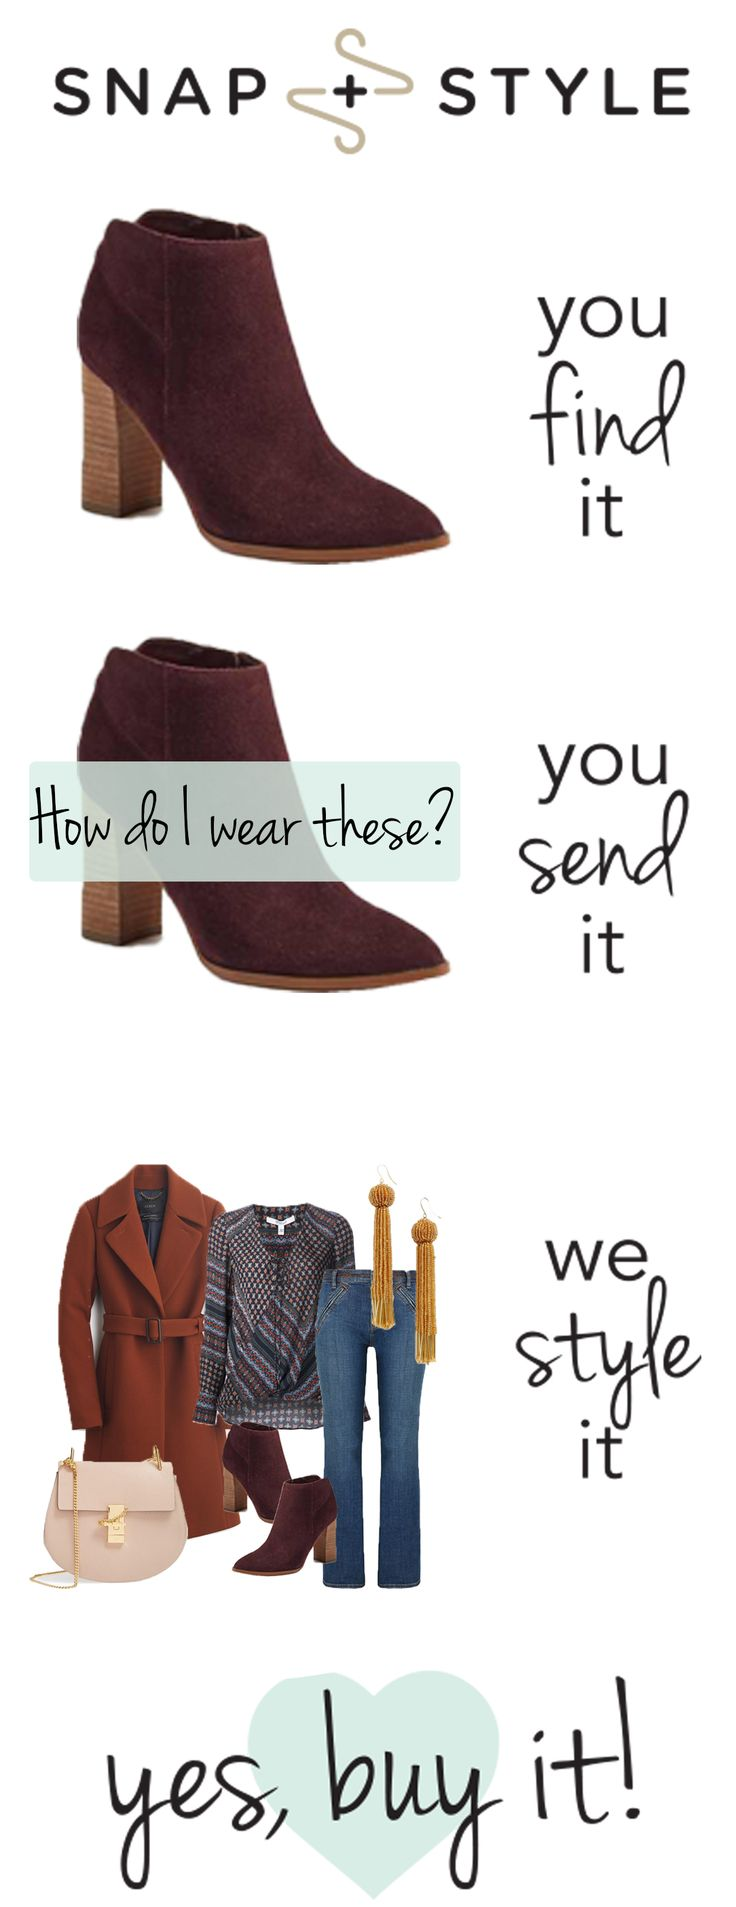 Three easy steps to getting styled...just sign up and submit a styling request! 1.Ask what to wear – from scratch or with something in mind 2. Provide quick details and hit submit 3. Get your outfit back from a real stylist – just for you – and shop the look!